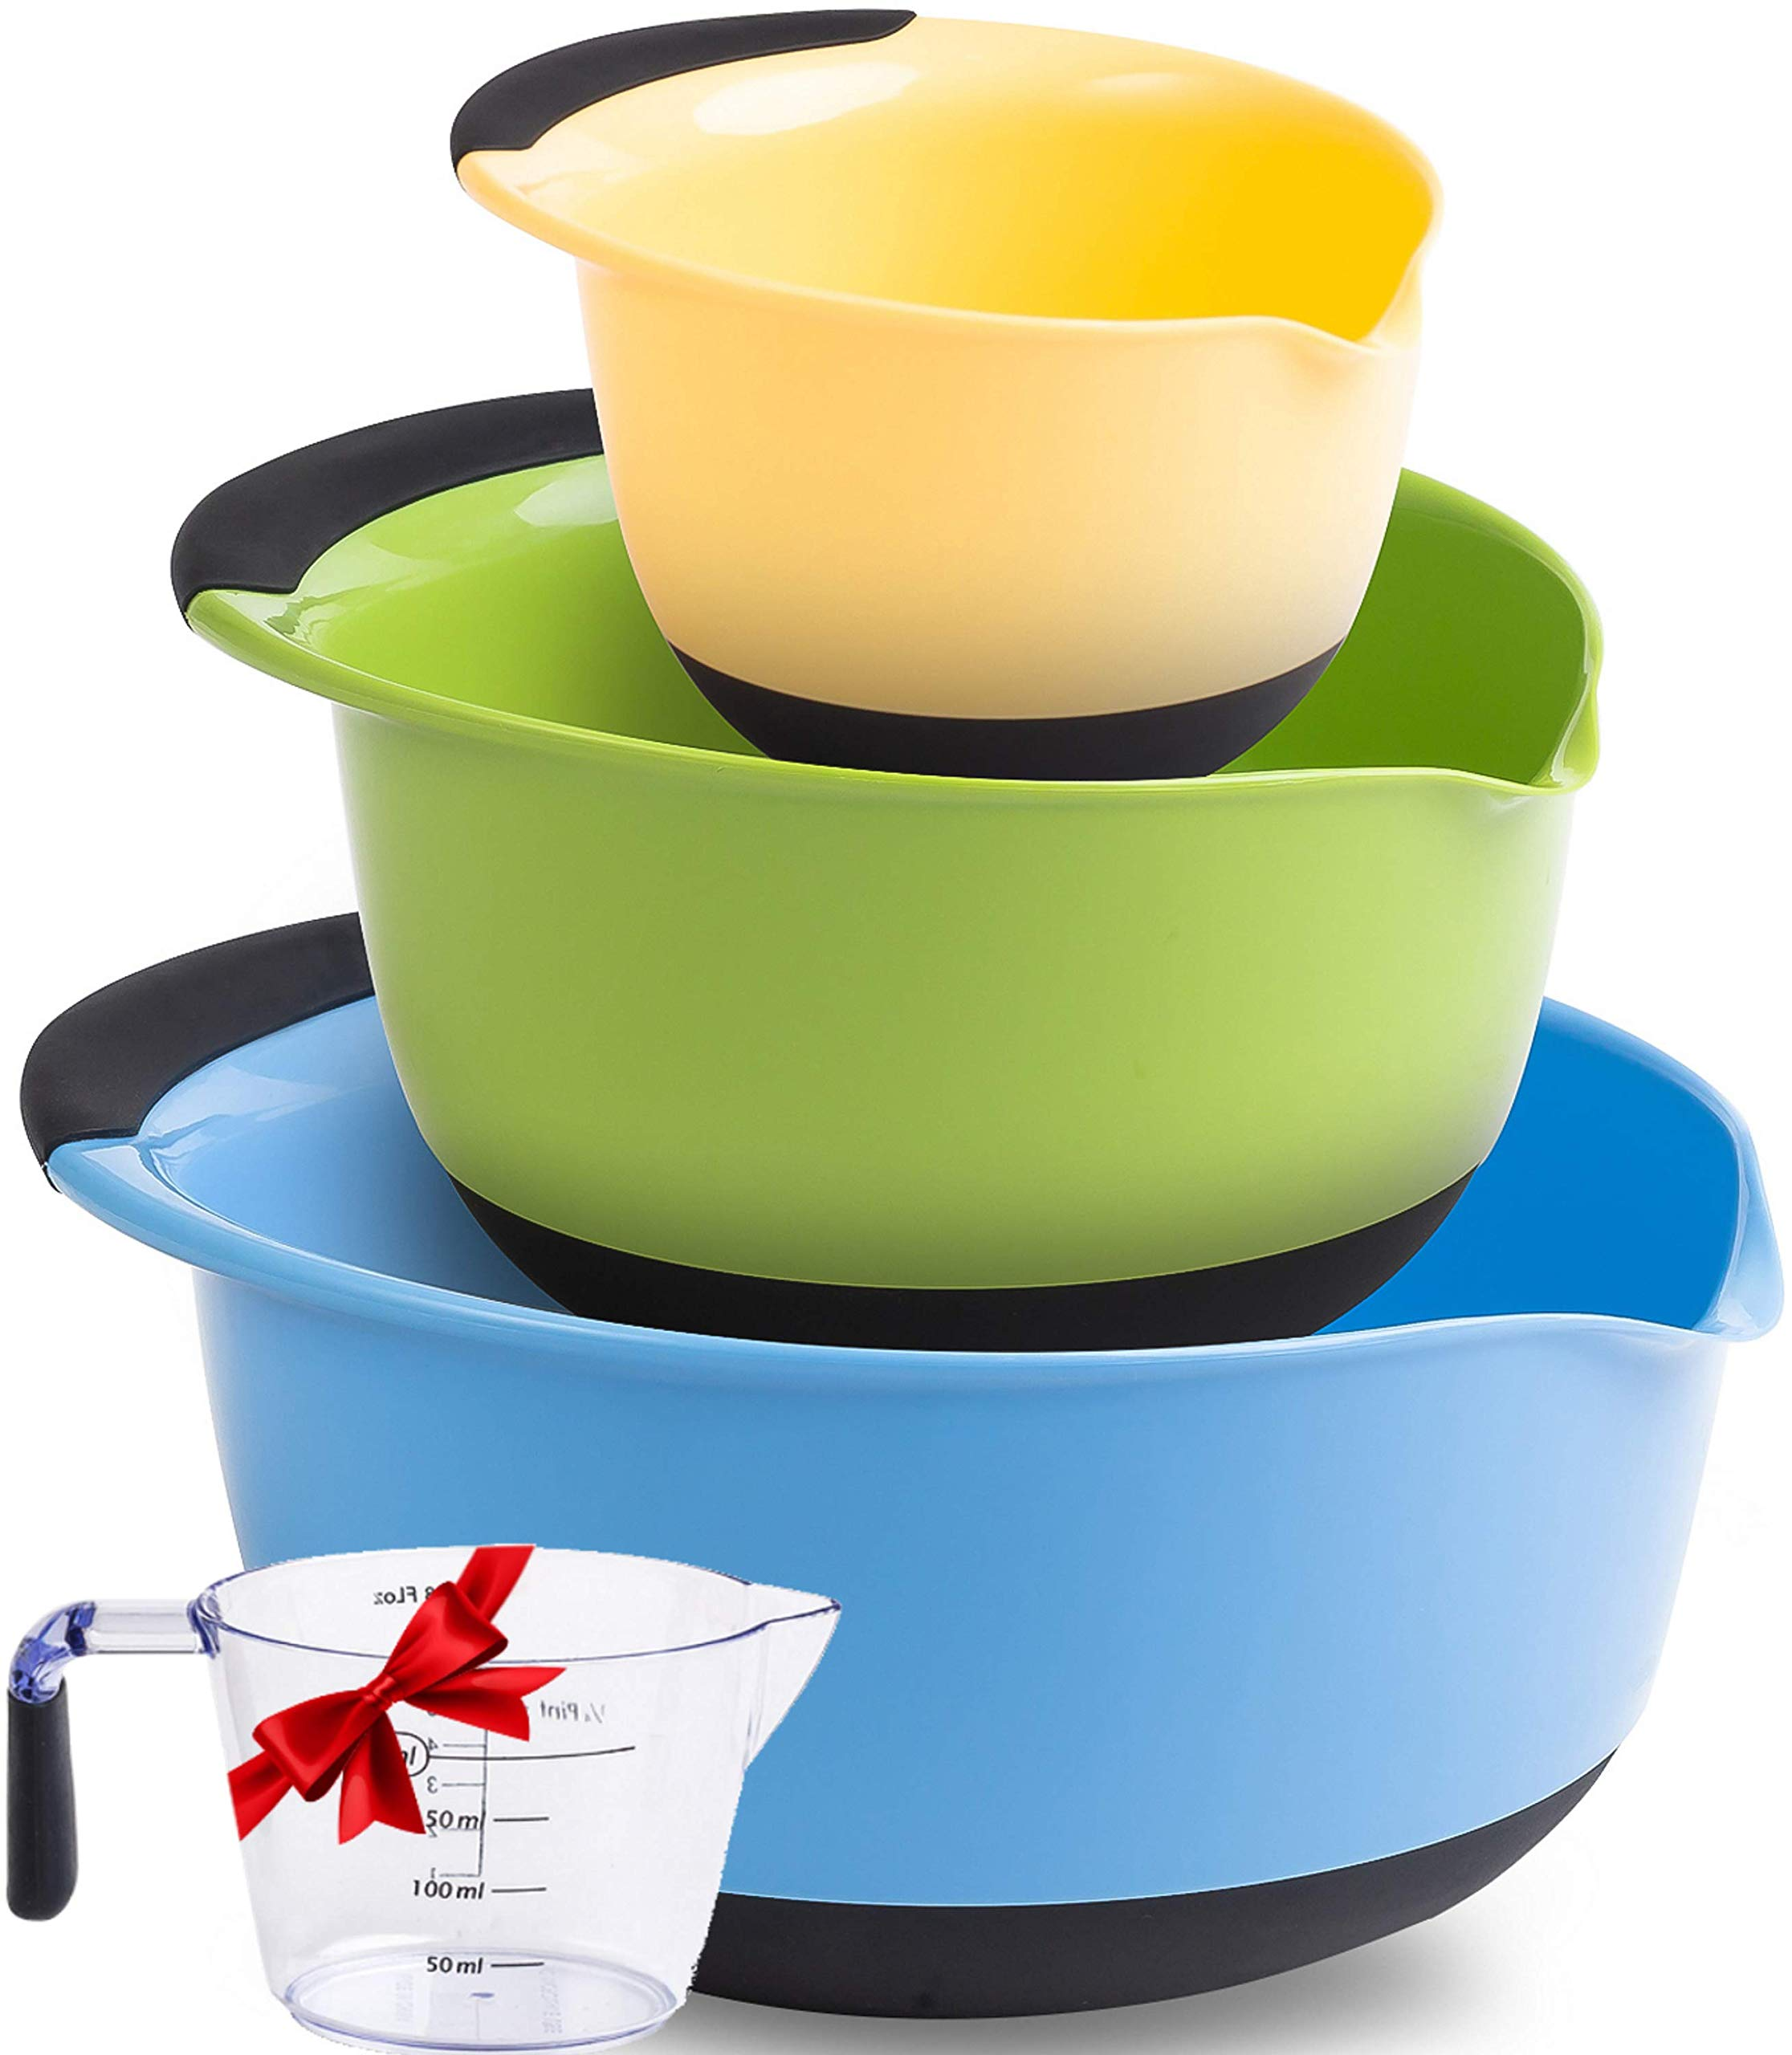 Premium Plastic Mixing Bowls (Set of 3) Sizes: 1.5, 3 & 5 QT - With Non Slip Bottom & Pouring Spout. For Healthy Cooking & Baking, Nesting and Stackable Free Bonus - measuring cup by MONKA (Image #1)